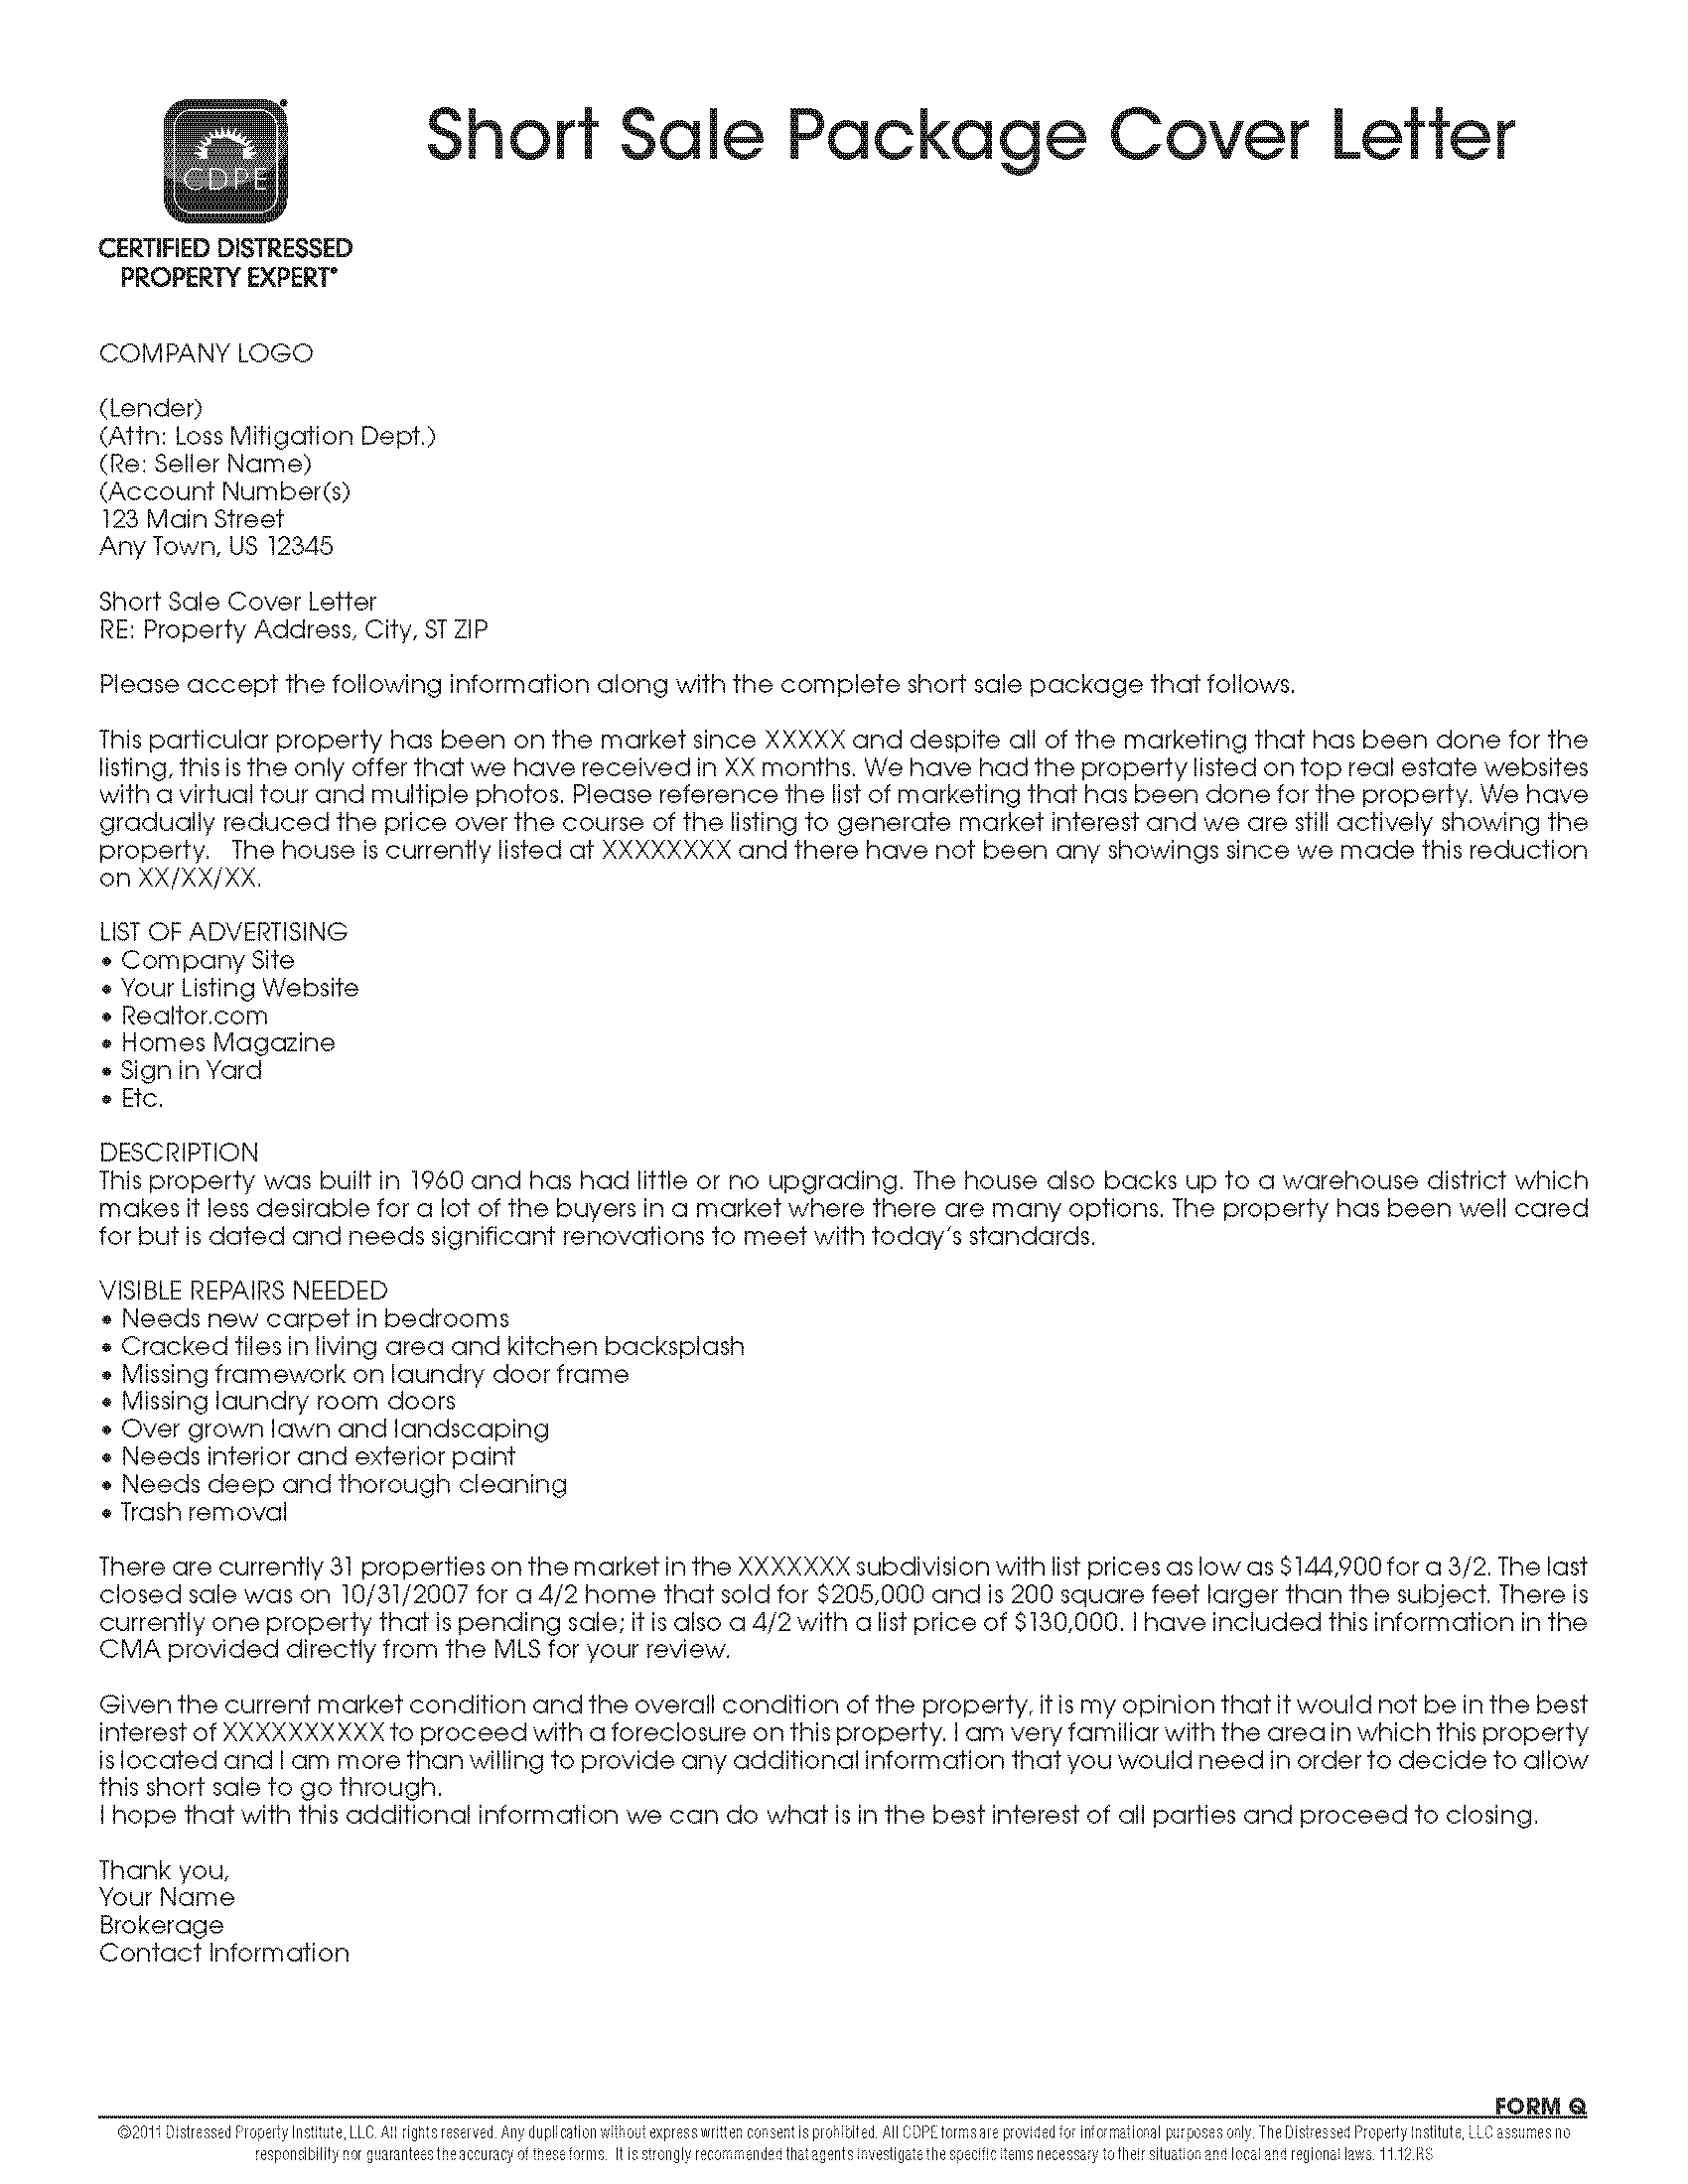 sample relocation cover letter makemoneywithalex sample relocation cover  letter  Sample Relocation Cover Letter Makemoneywithalex Sample Relocation  Cover     RecentResumes com